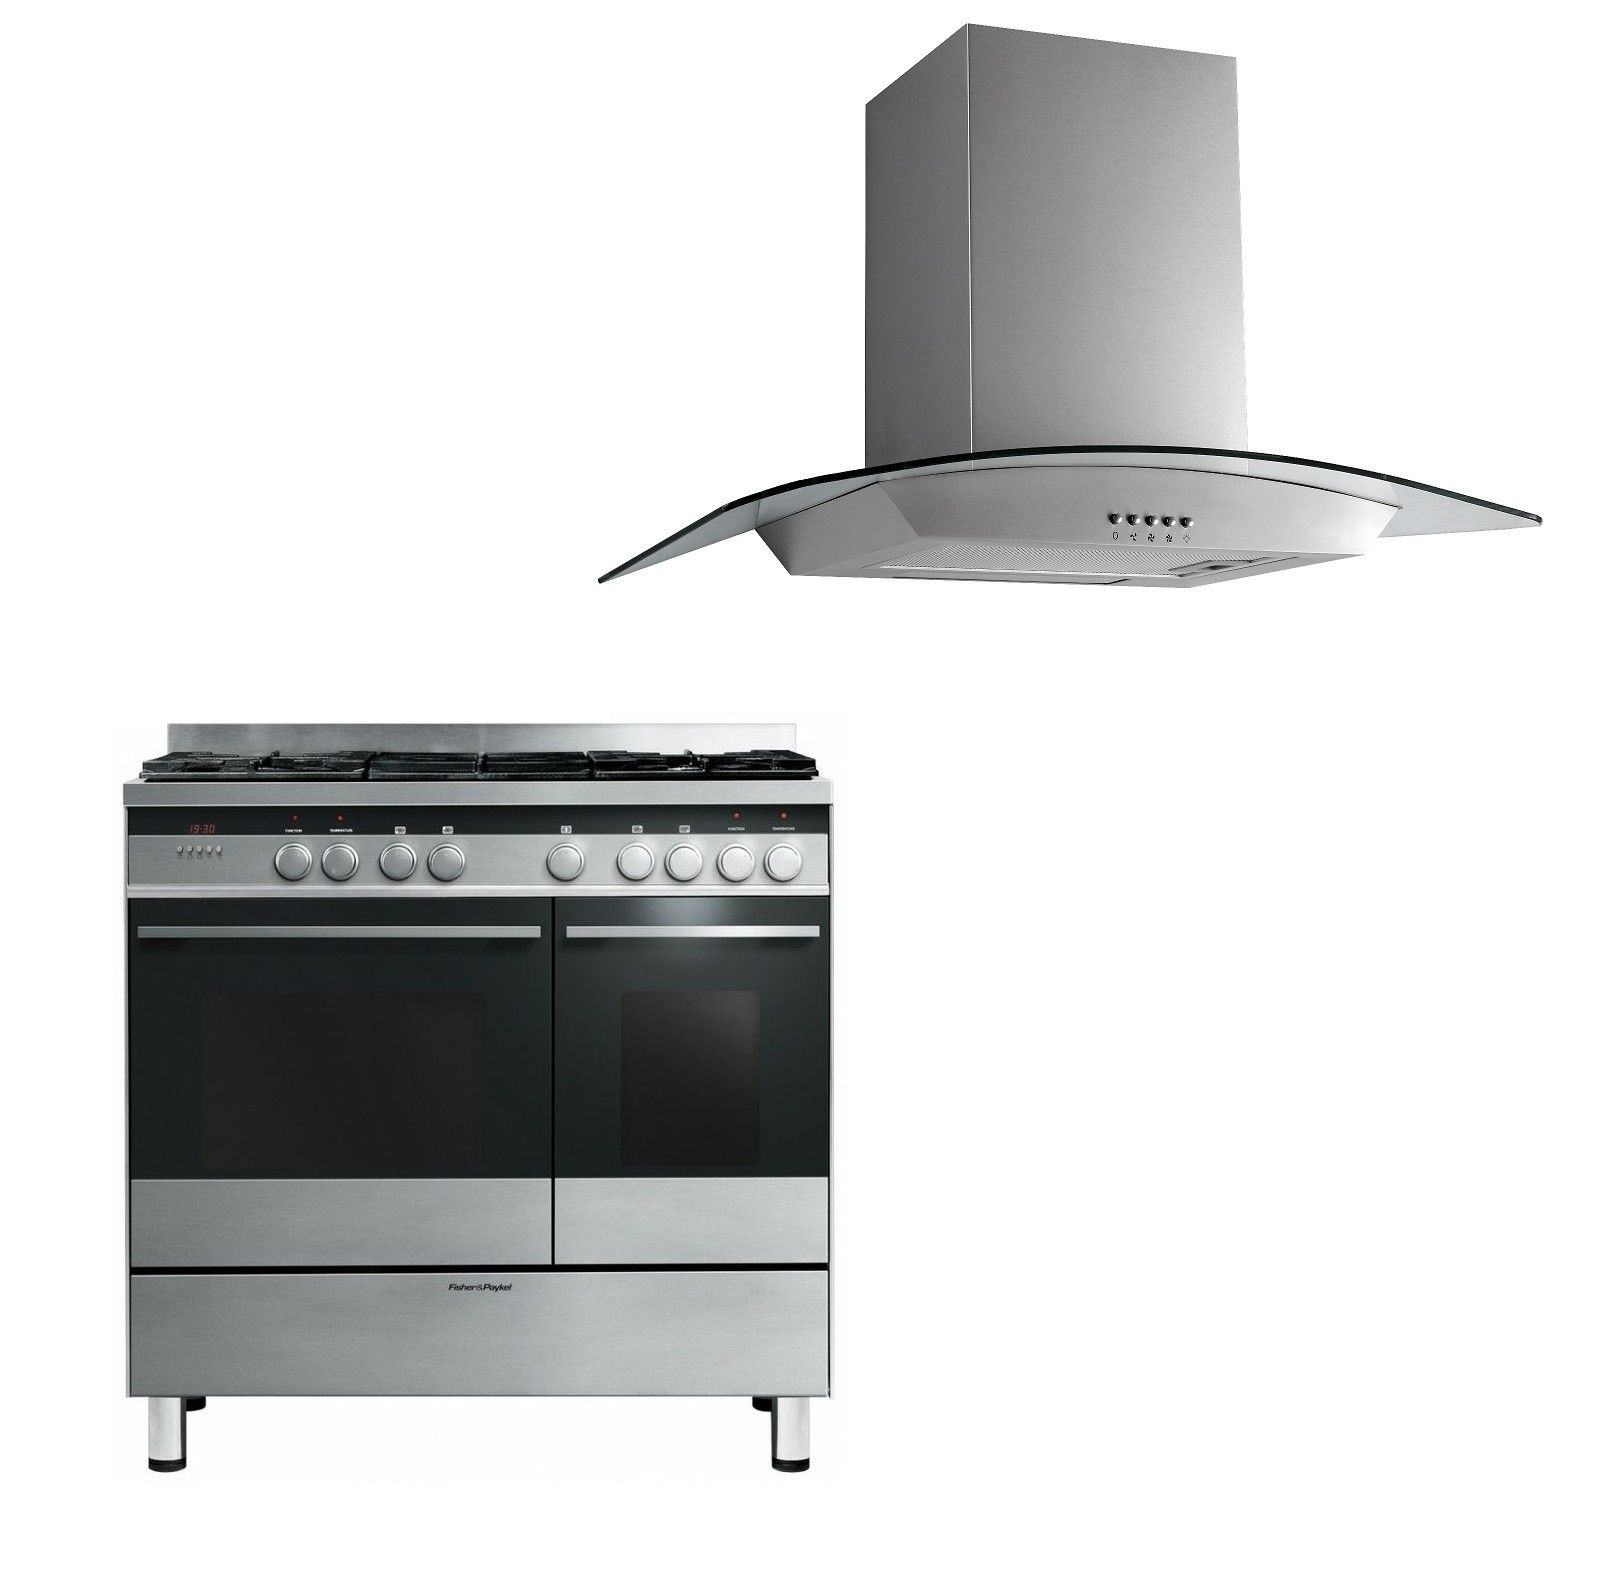 Cooker and hood £930 | cookers and hoods | Pinterest | Cooker hoods ...